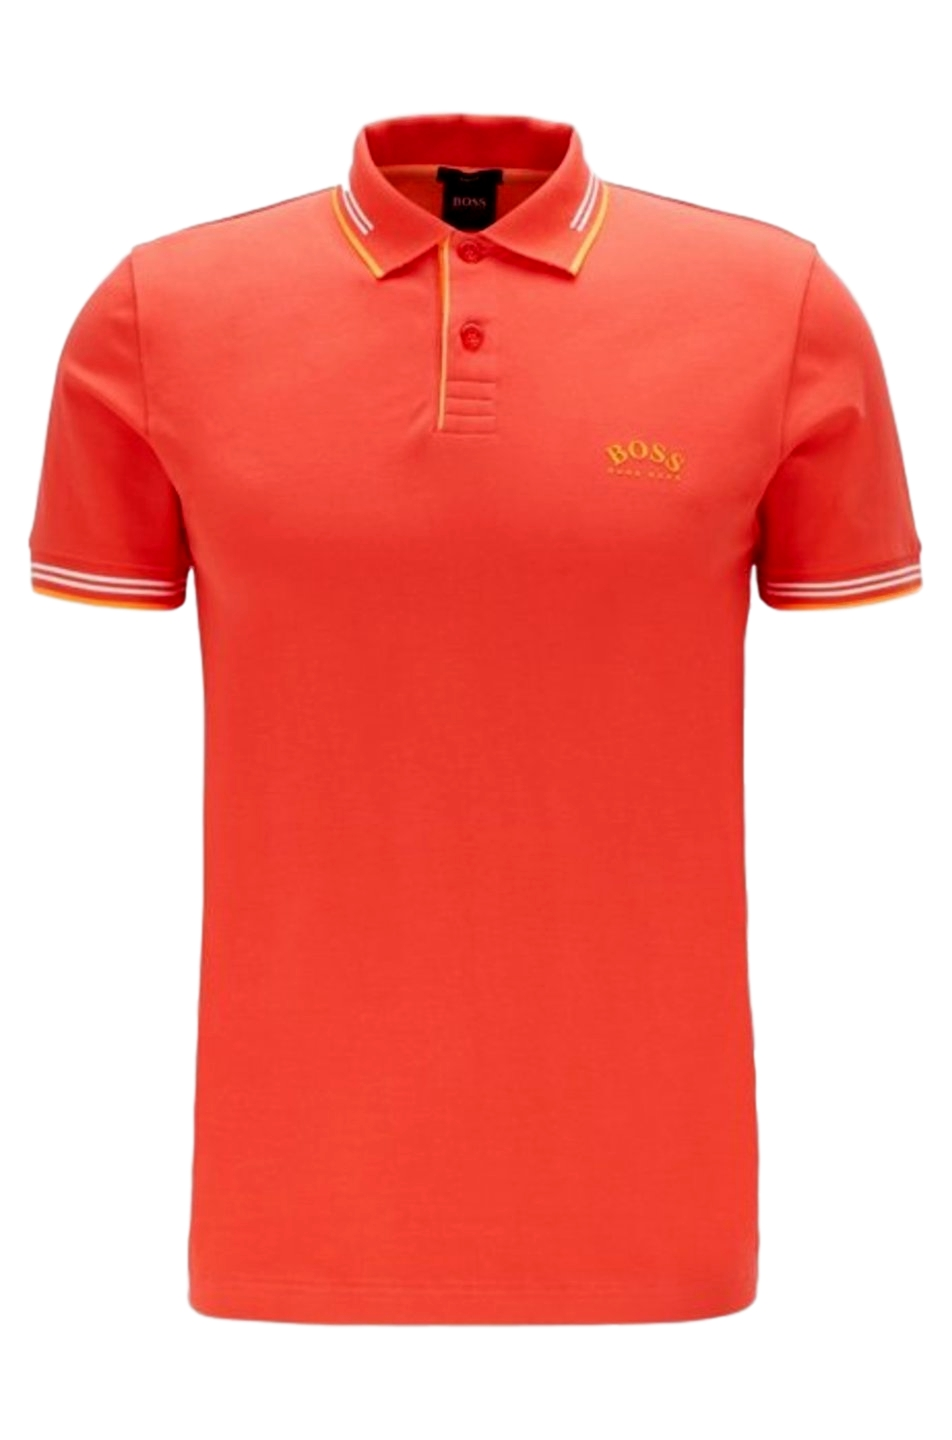 HUGO BOSS Polo slim fit pique elasticizzato ORANG  Mod. Paul Curved  50412675